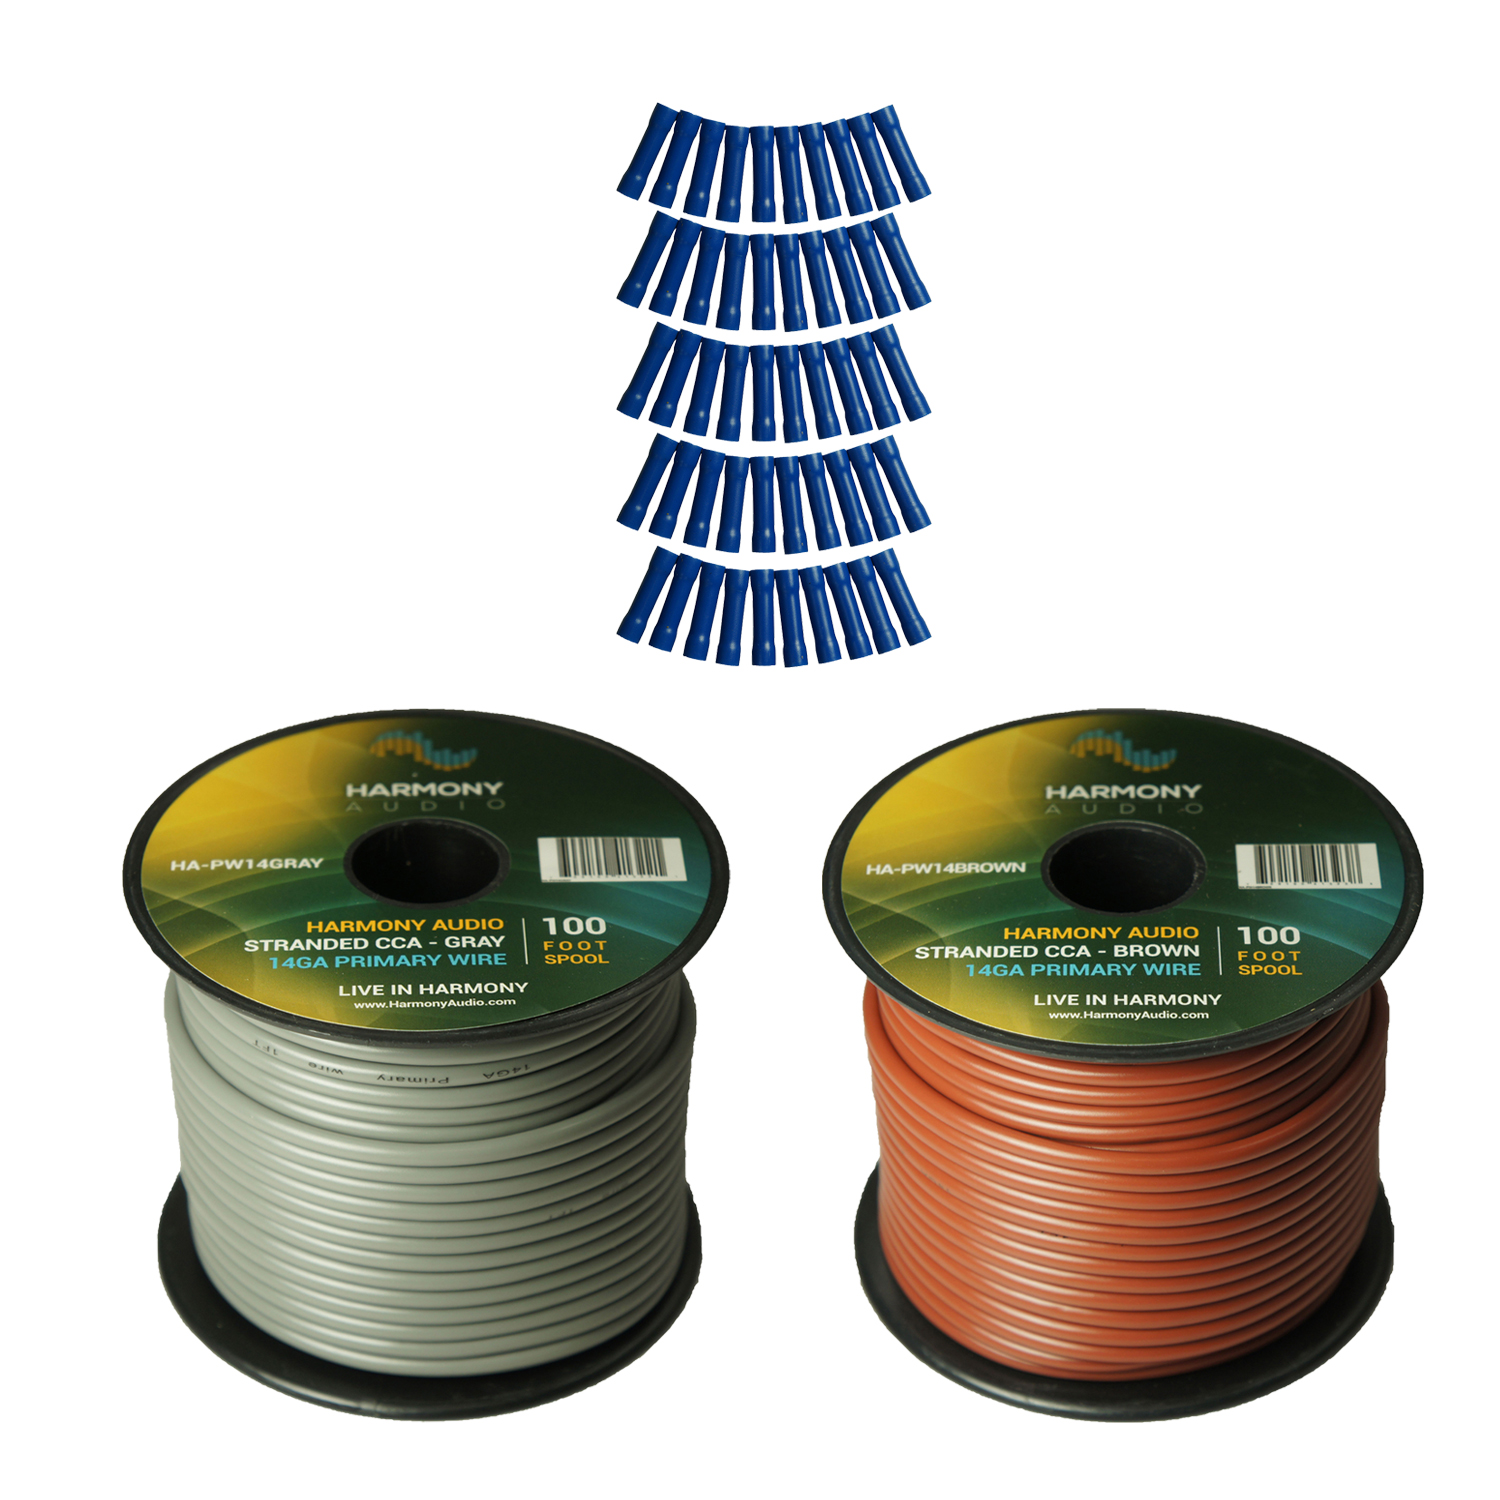 Harmony Audio Primary Single Conductor 14 Gauge Power or Ground Wire - 2 Rolls - 200 Feet - Gray & Brown for Car Audio / Trailer / Model Train / Remote